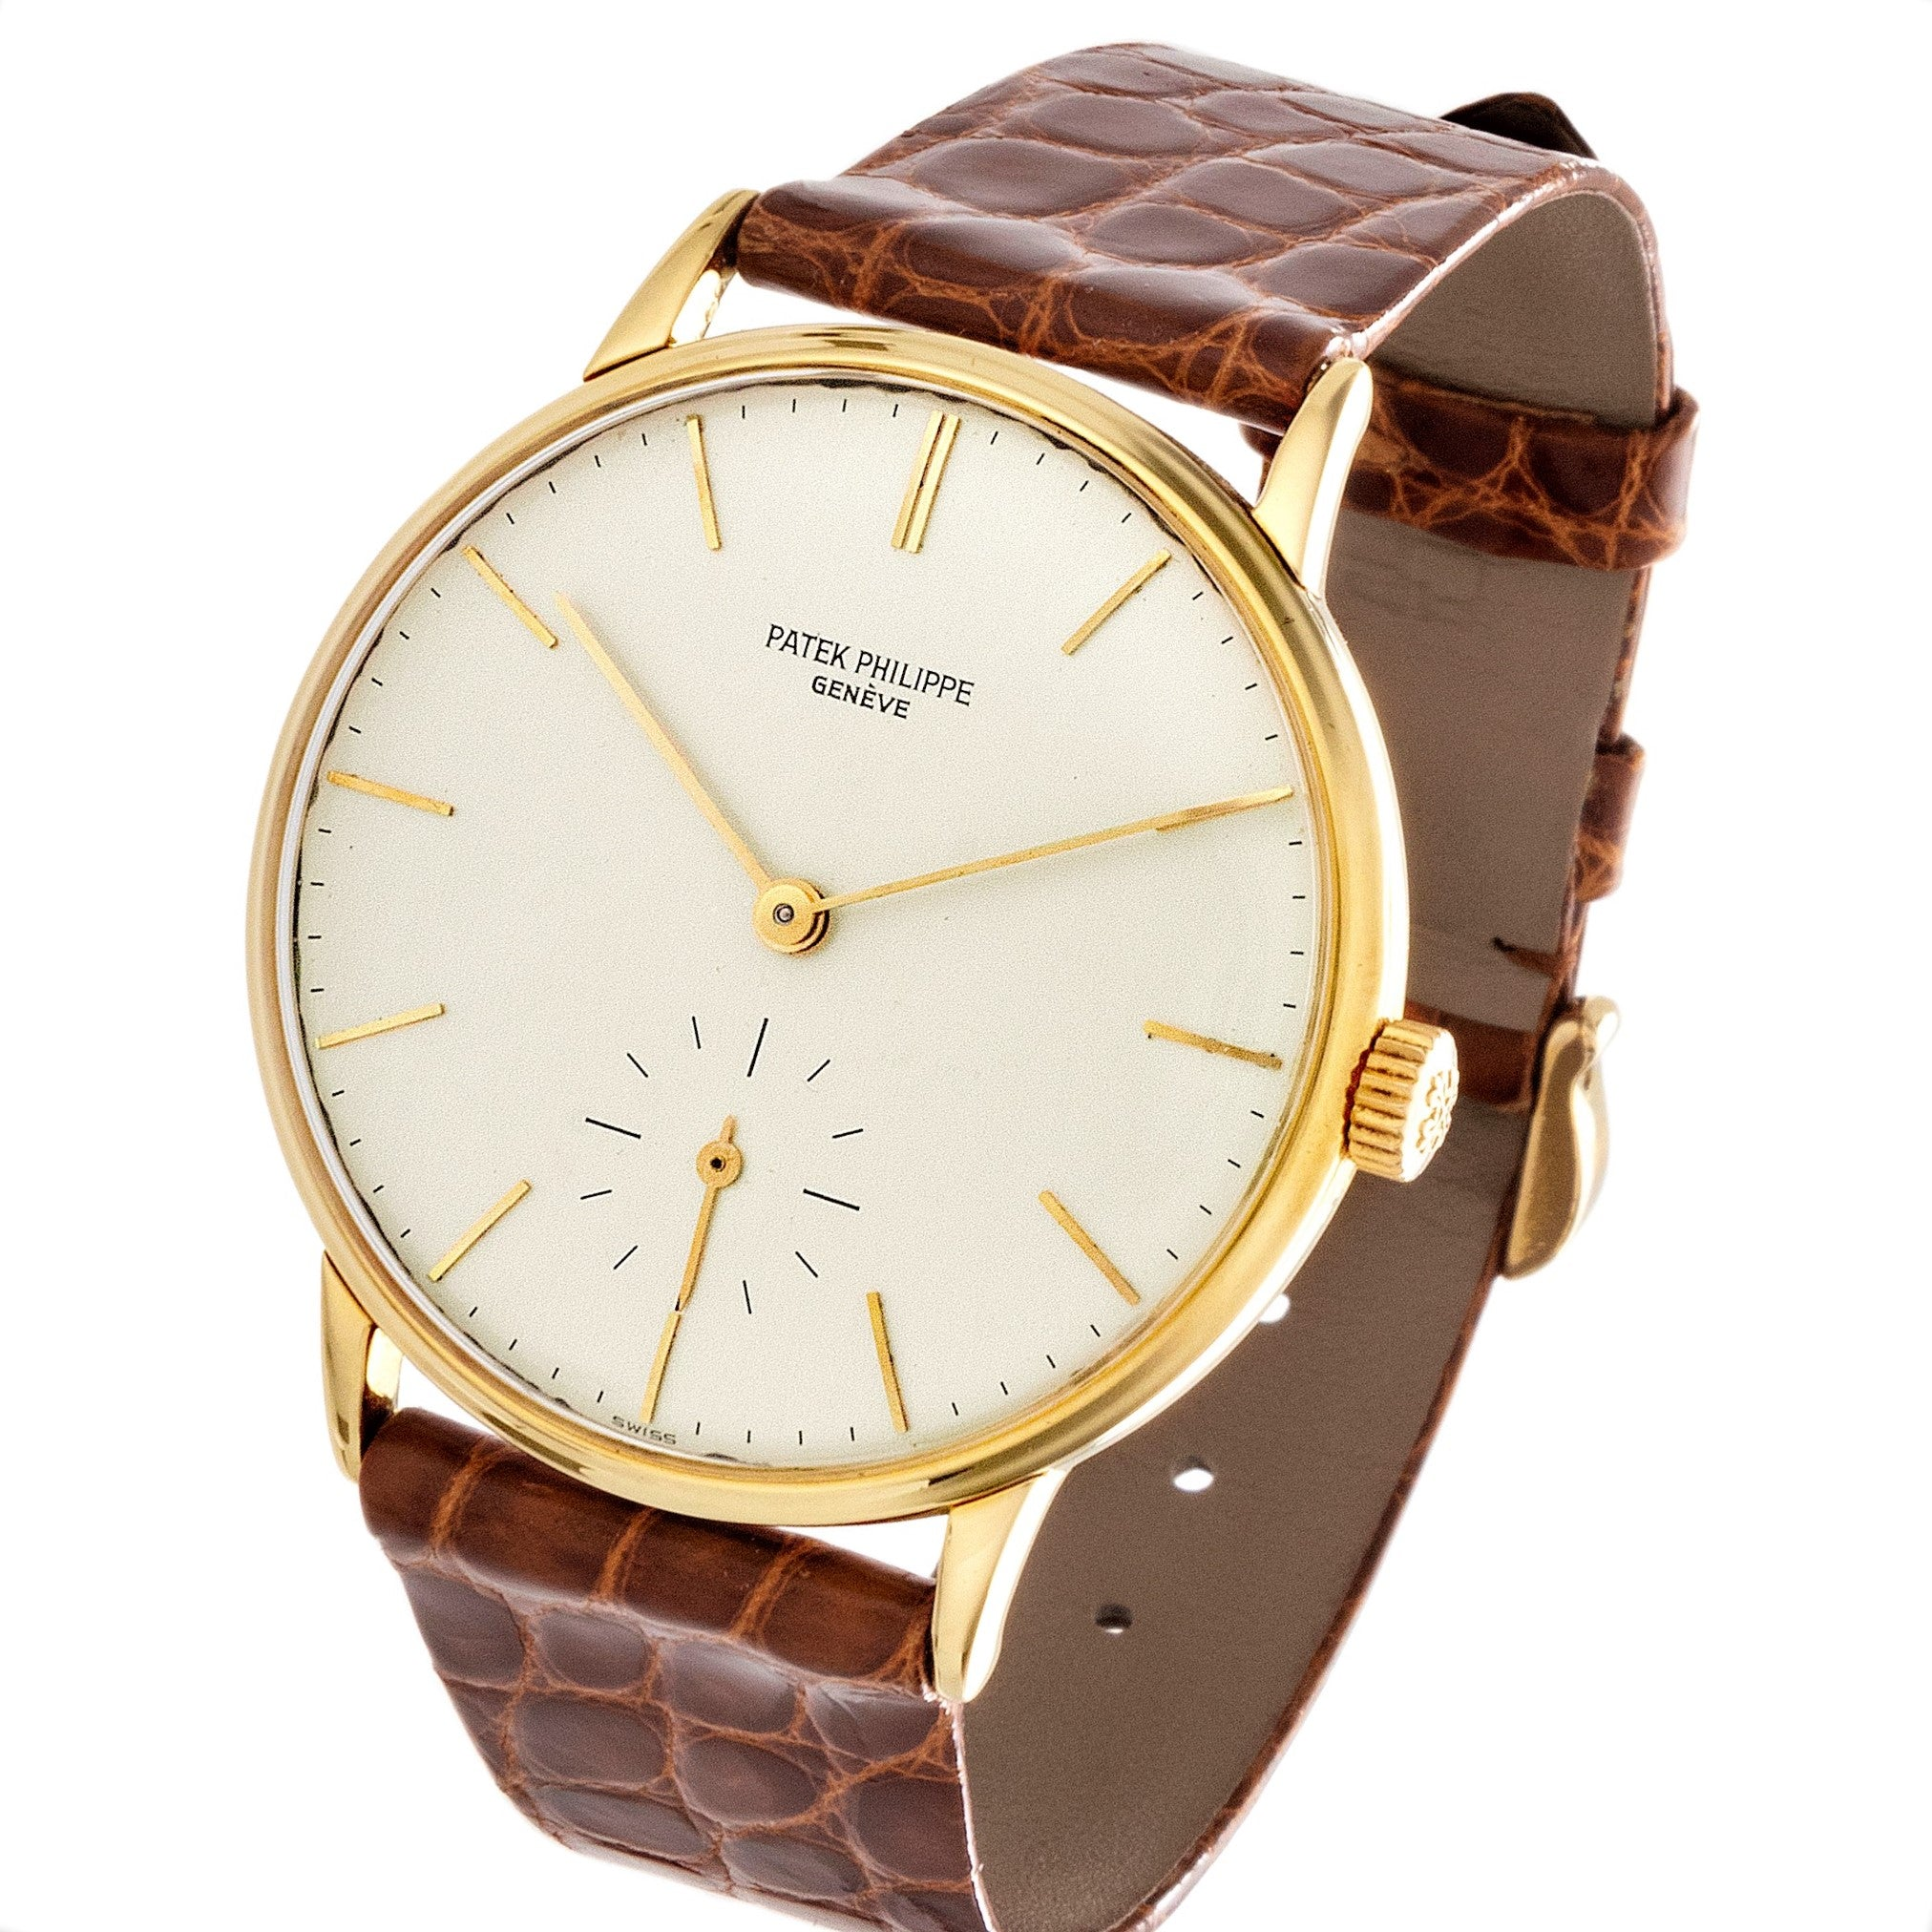 Patek Philippe 3410J Calatrava Watch